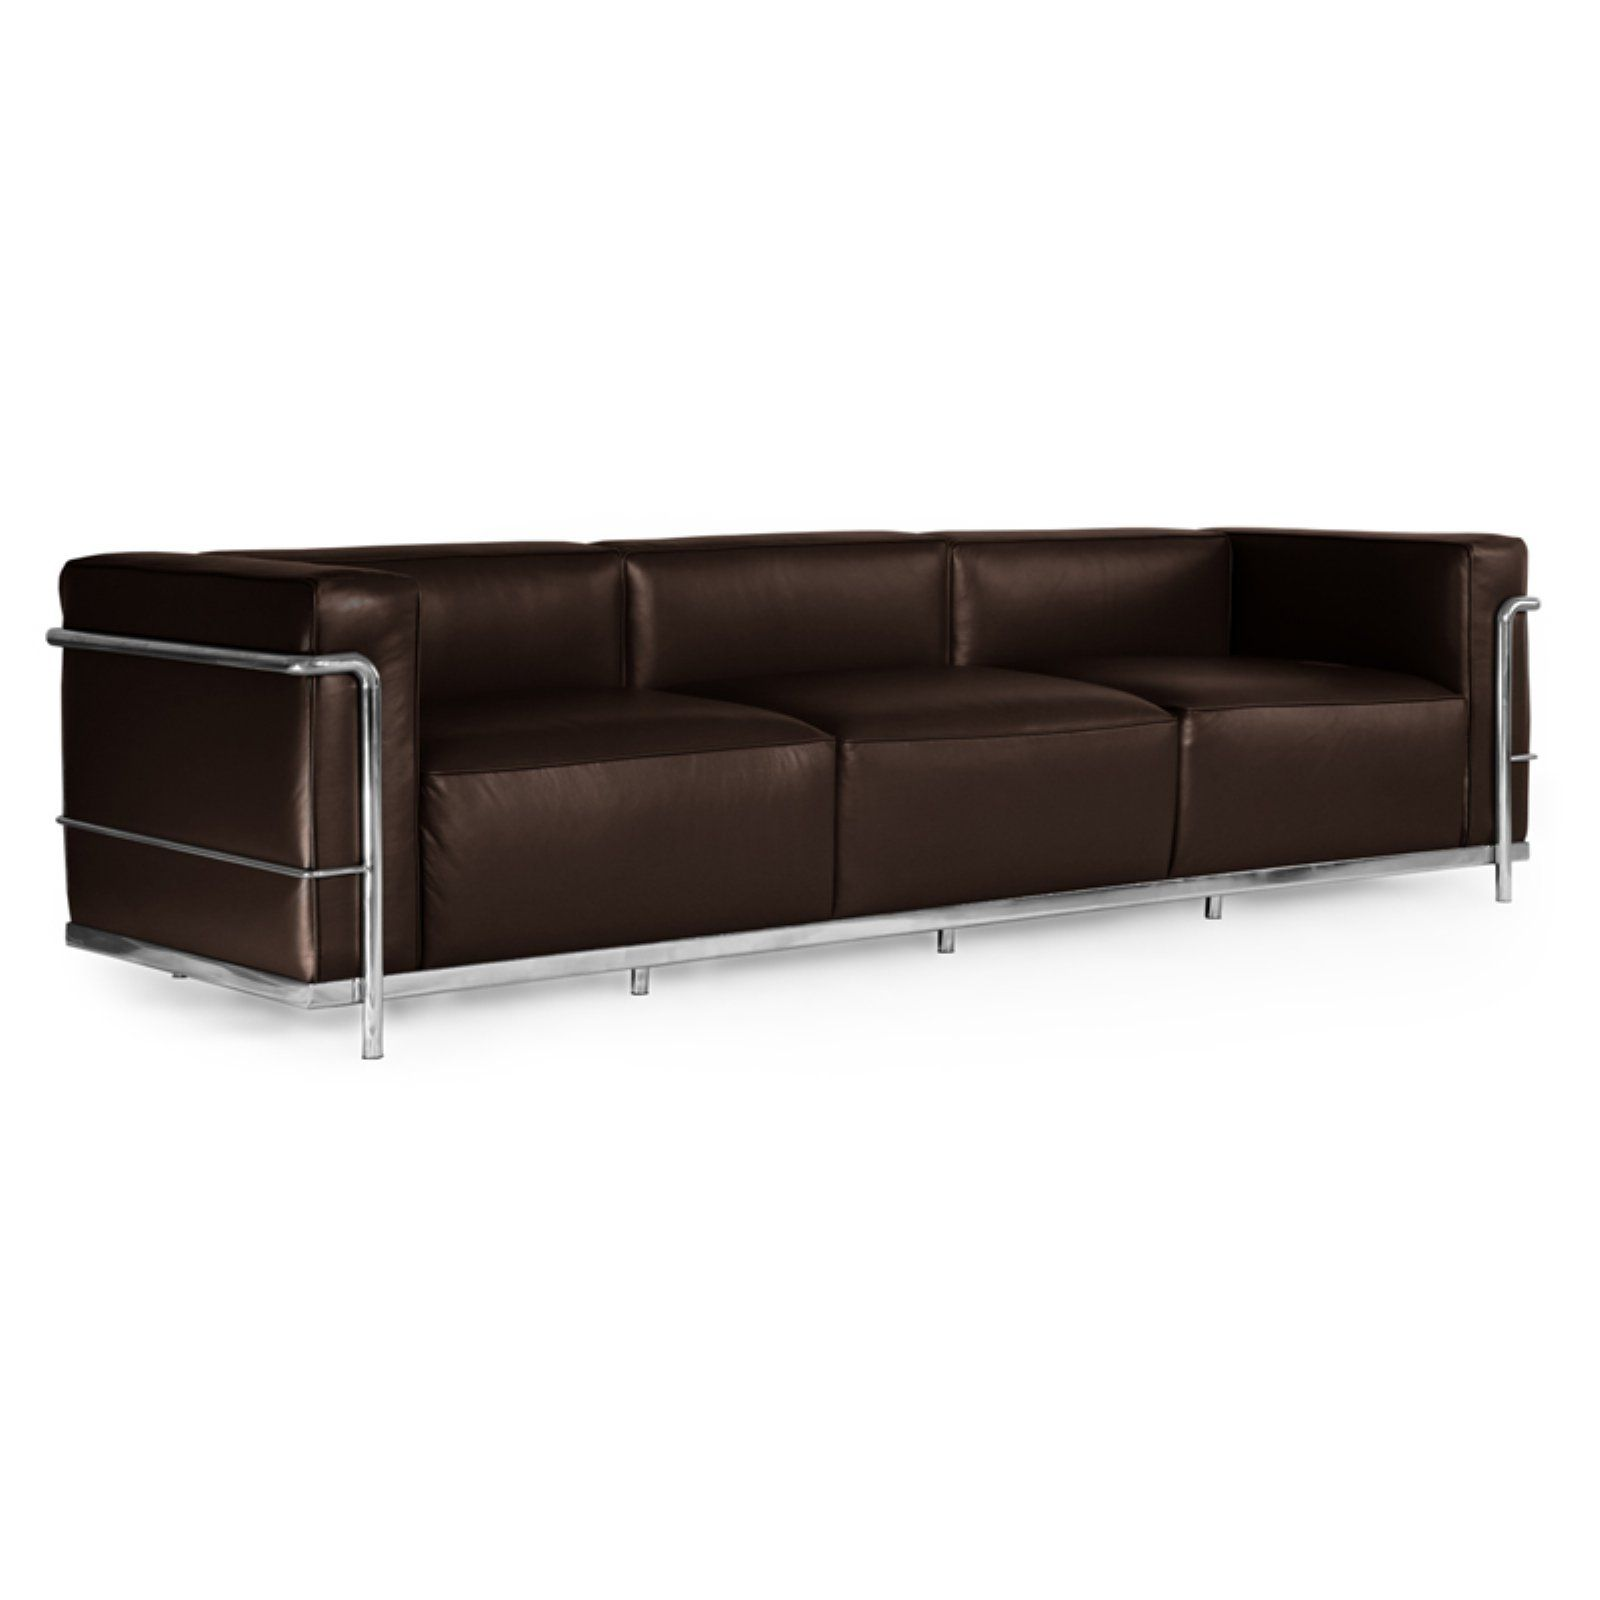 Outstanding Kardiel Roche Premium Aniline Leather Loveseat Choco Brown Pdpeps Interior Chair Design Pdpepsorg